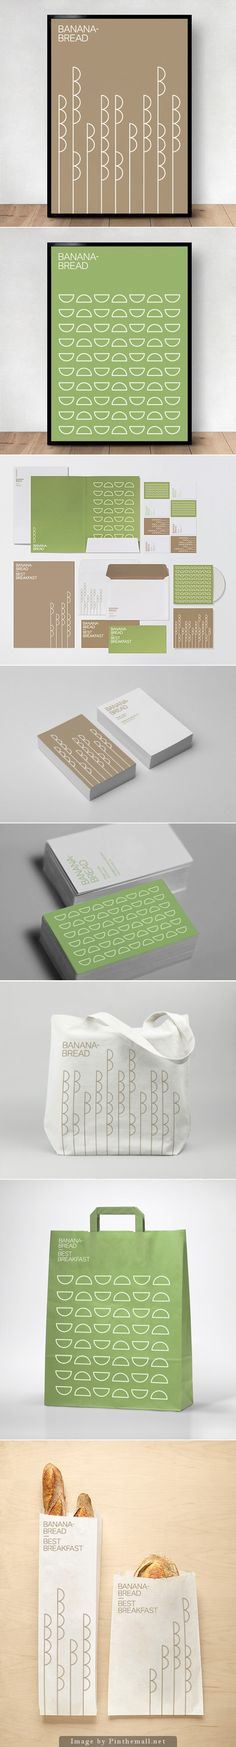 Let's have some banana bread for breakfast identity #packaging curated by Packaging Diva PD